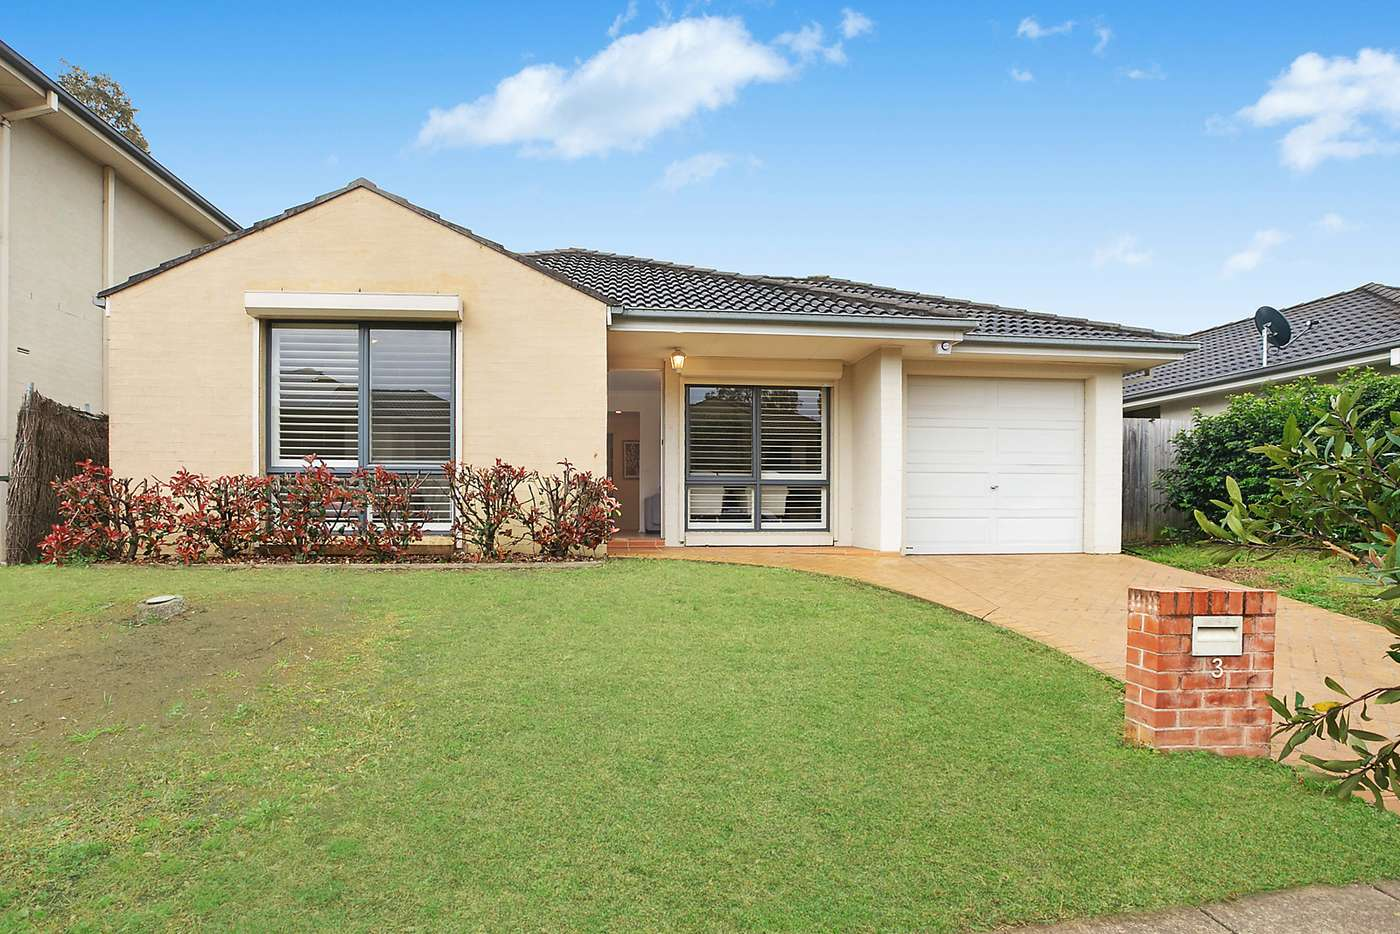 Main view of Homely house listing, 3 Croyde Street, Stanhope Gardens NSW 2768